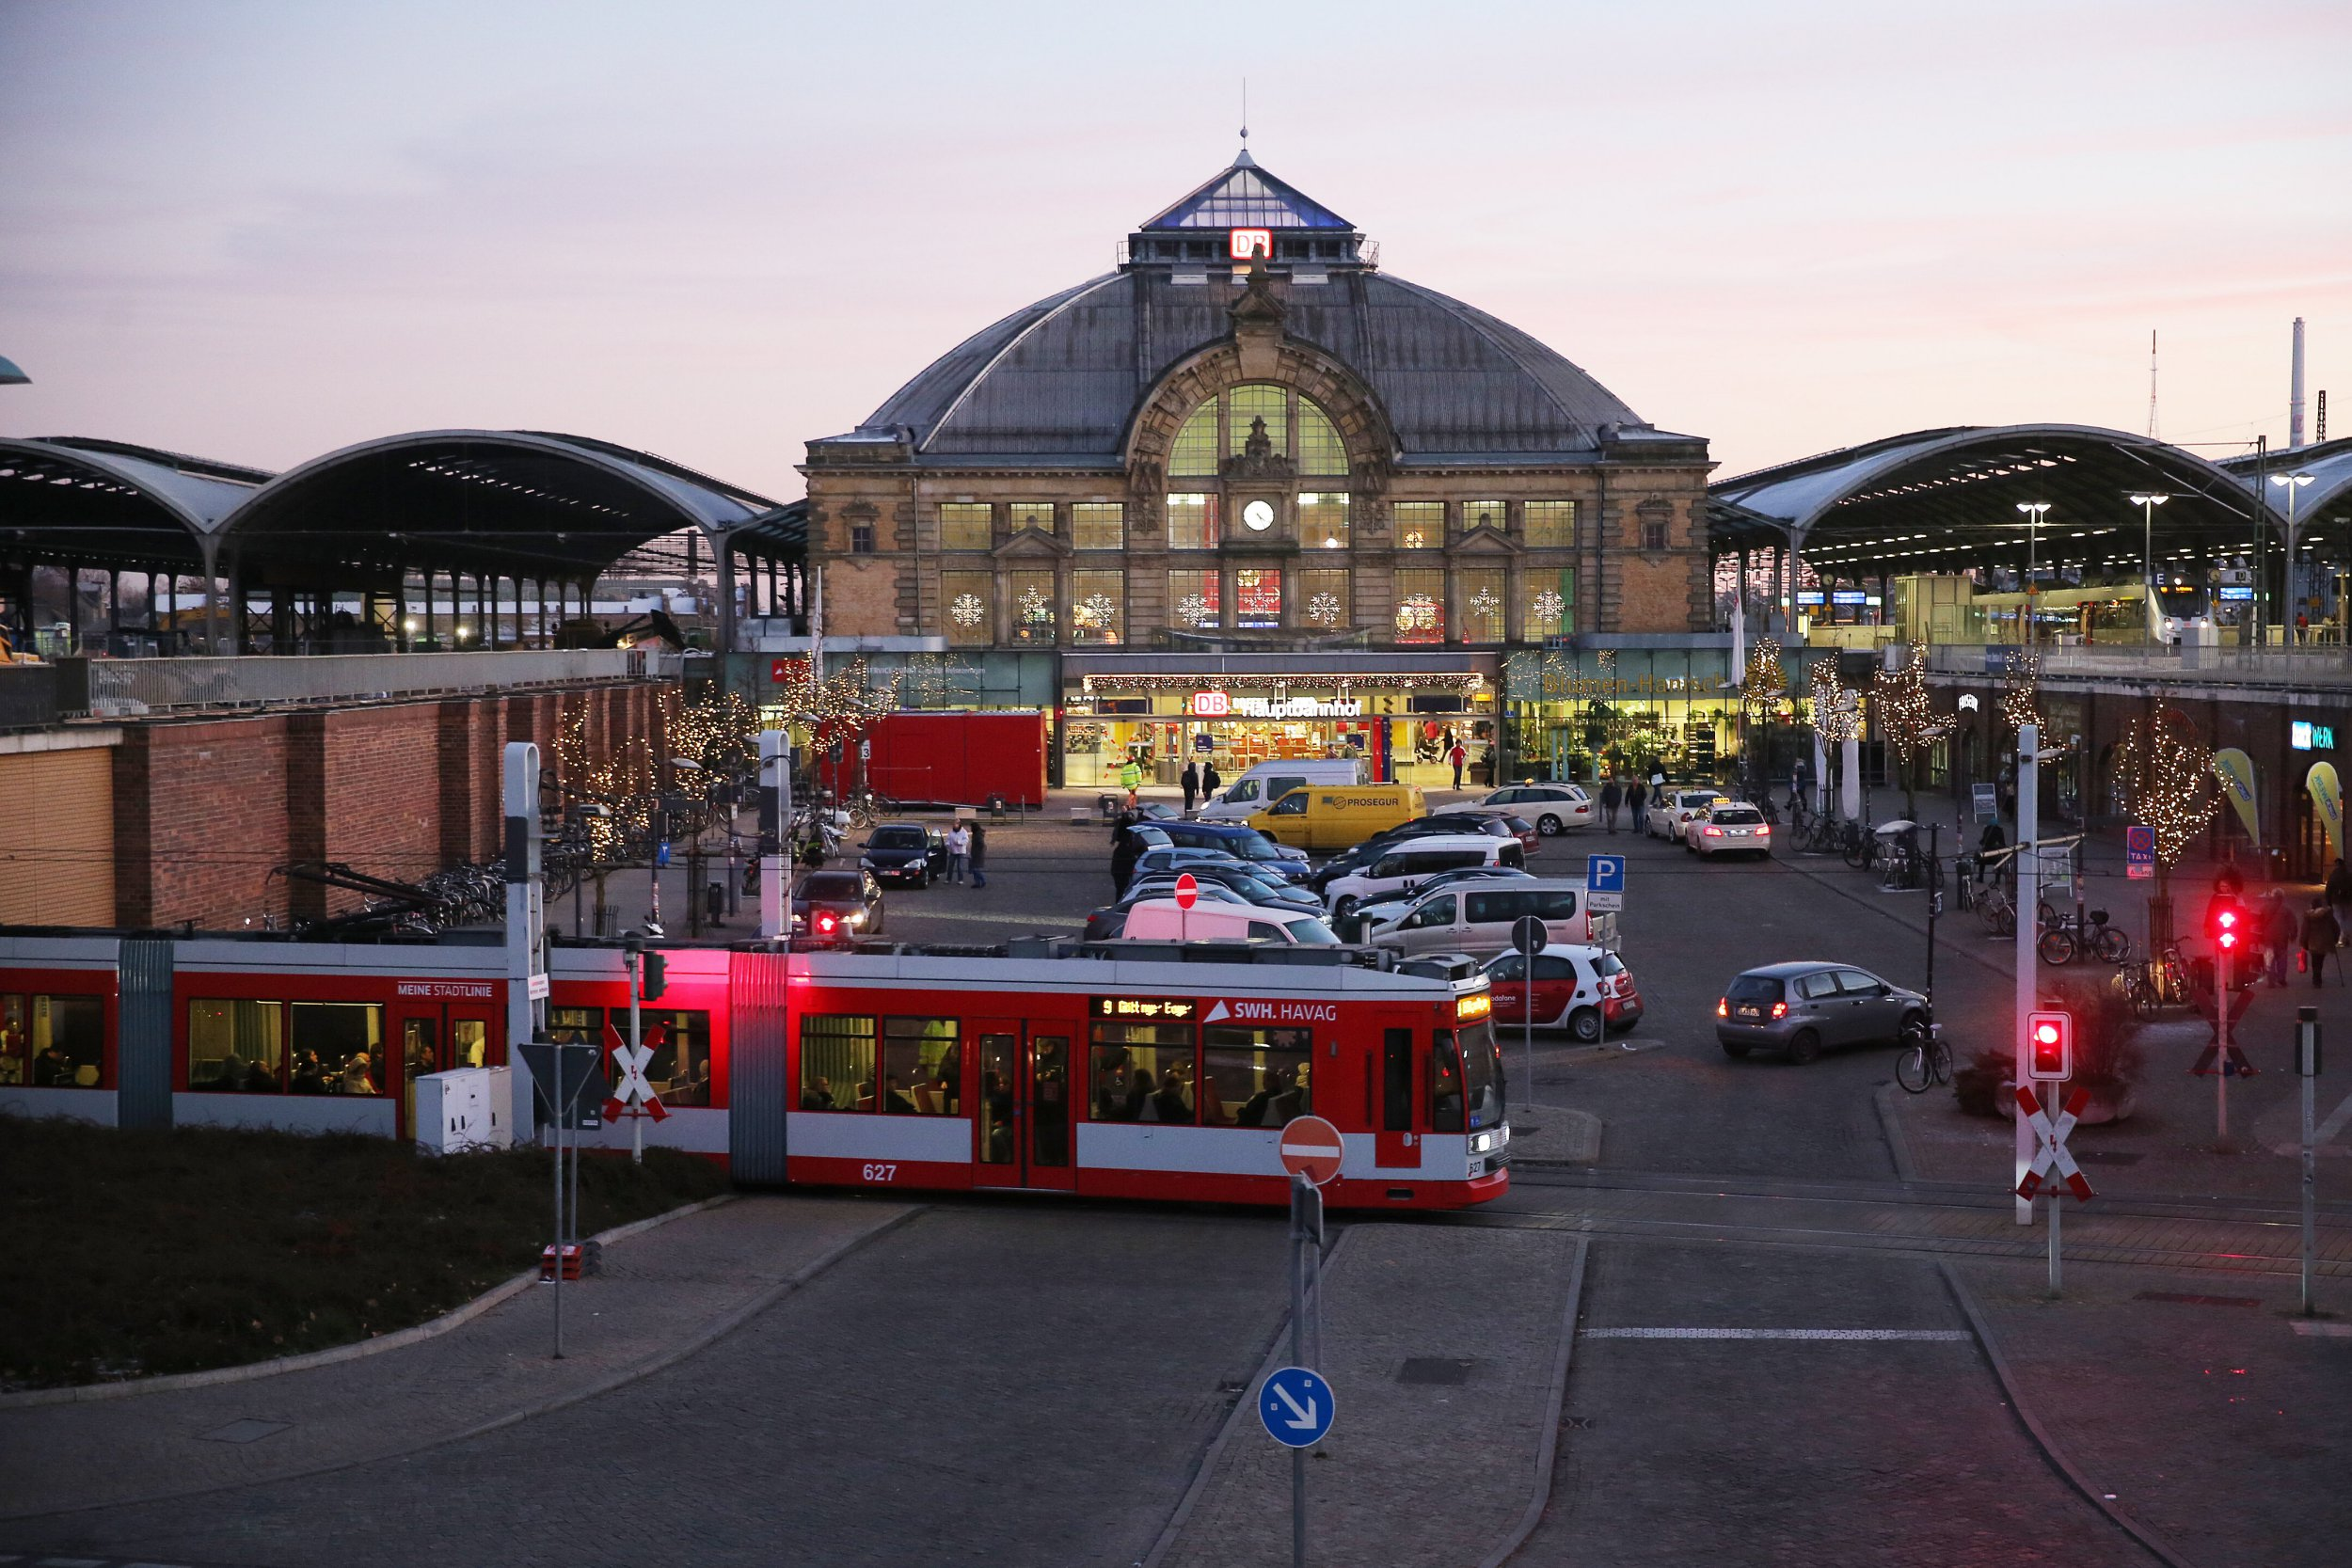 Teenager, 19, found in pool of blood after blowing up ticket machine at German train station